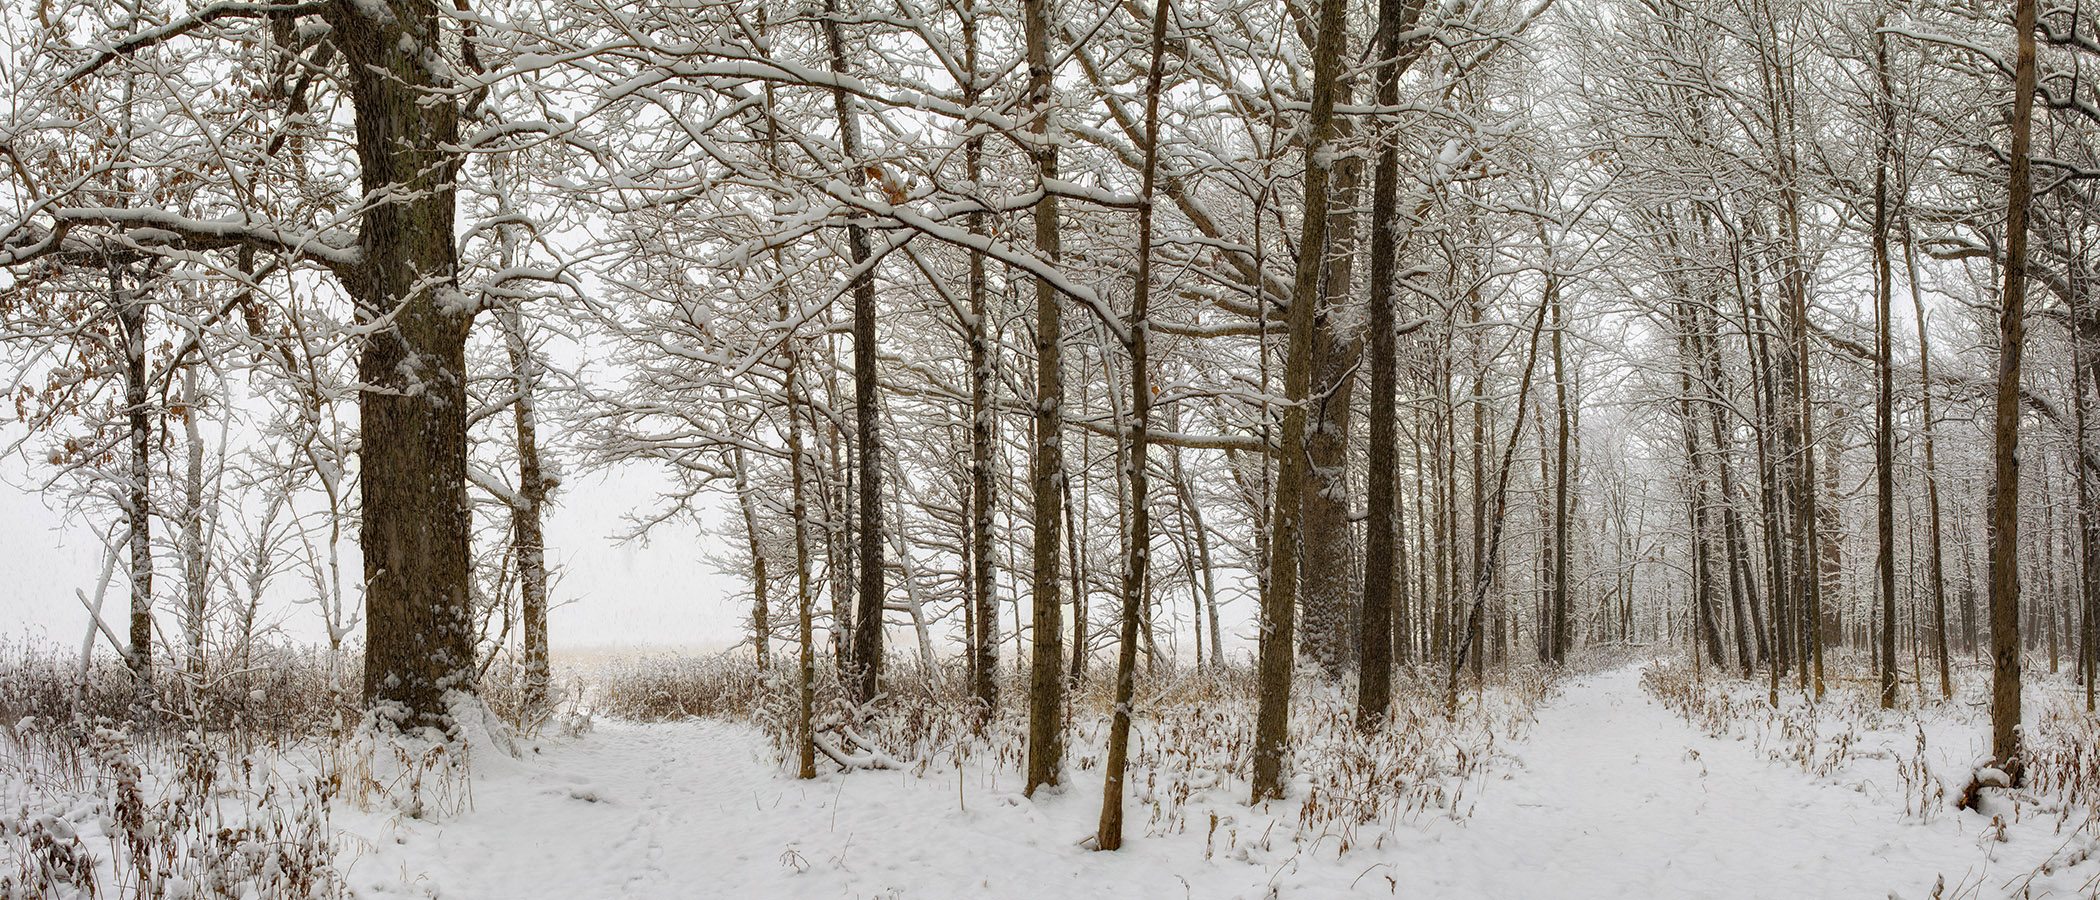 Happy new year! The snow-laden branches and strong, slender tree trunks of the woods around Fermilab create a calming setting to walk around in. Photo: Marty Murphy